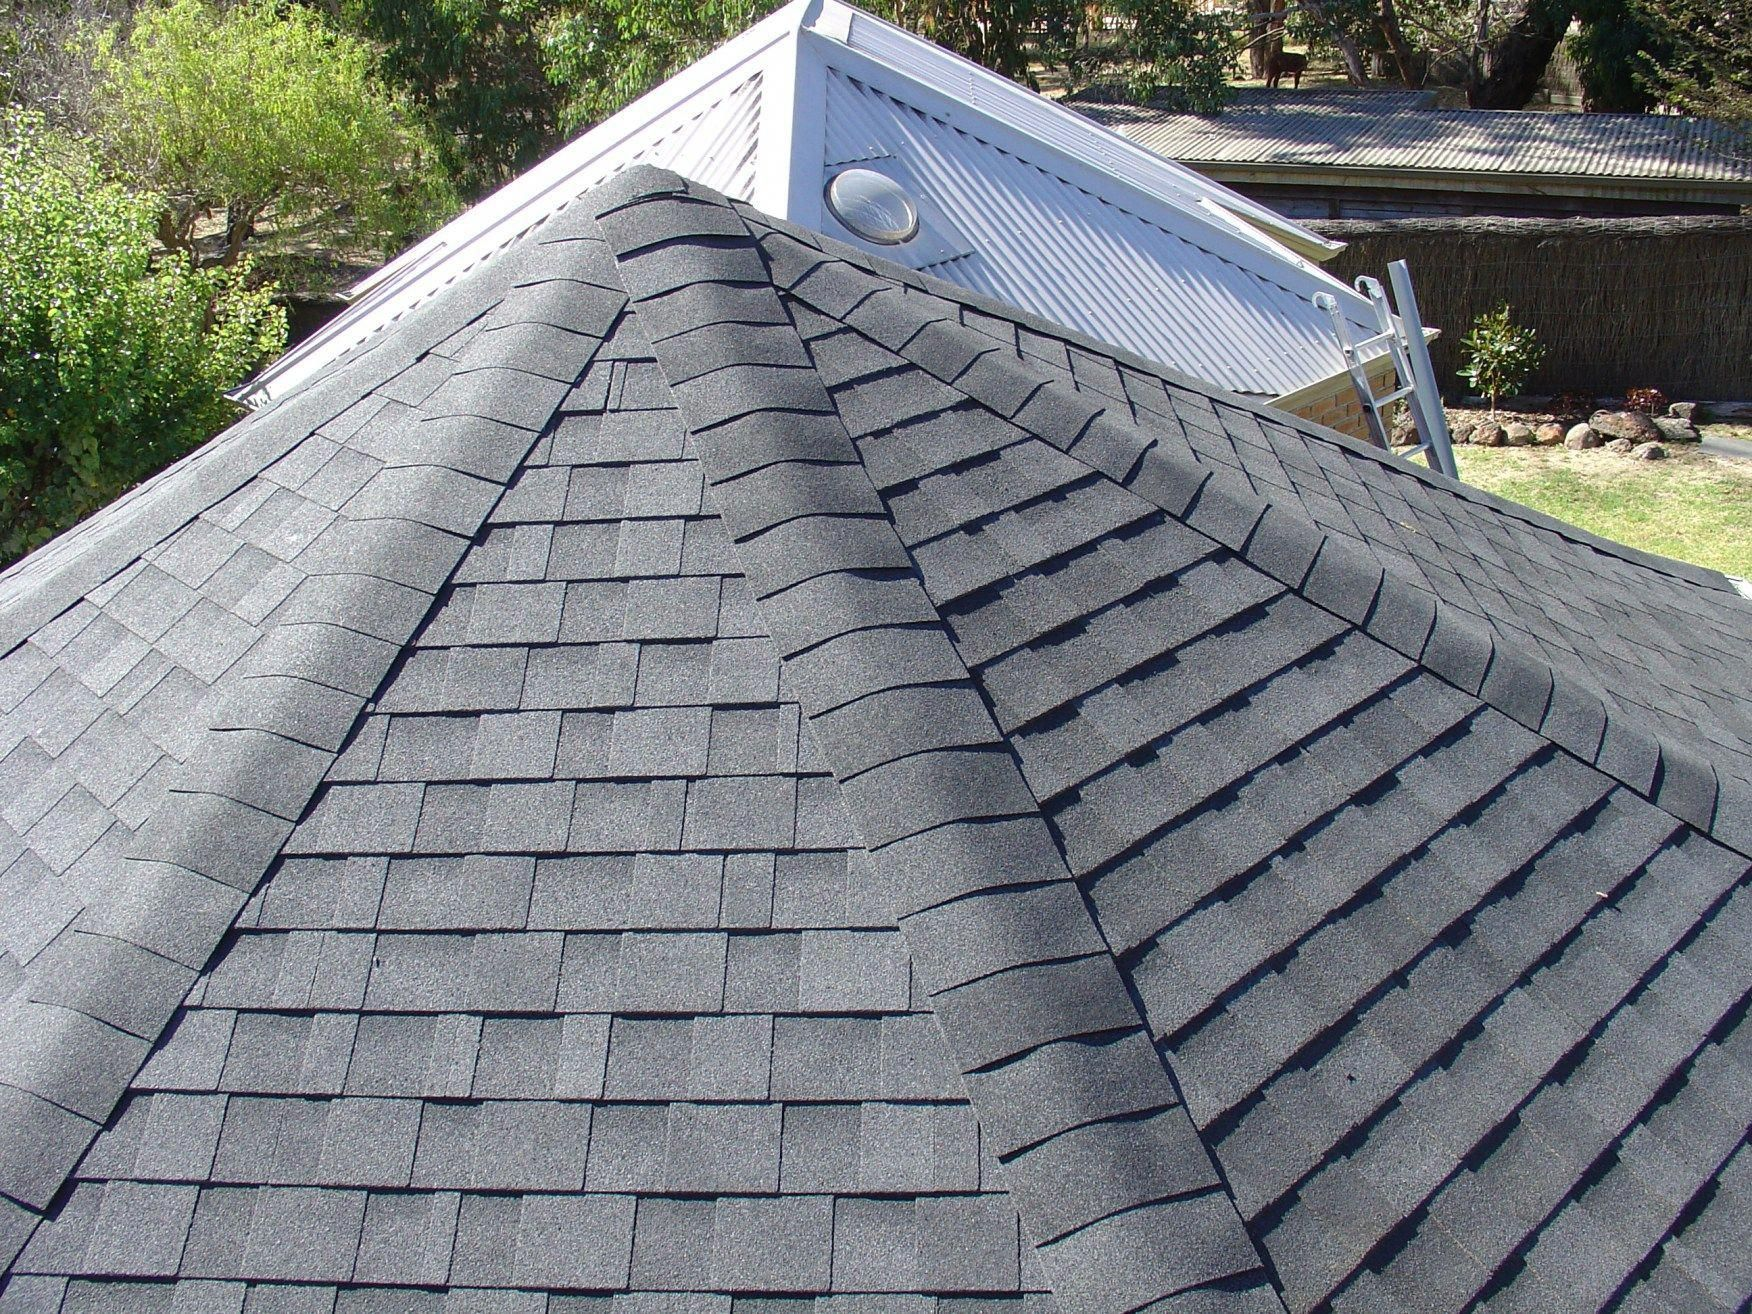 Best Roofing Materials For Homes 2018 Roofing Material Costs